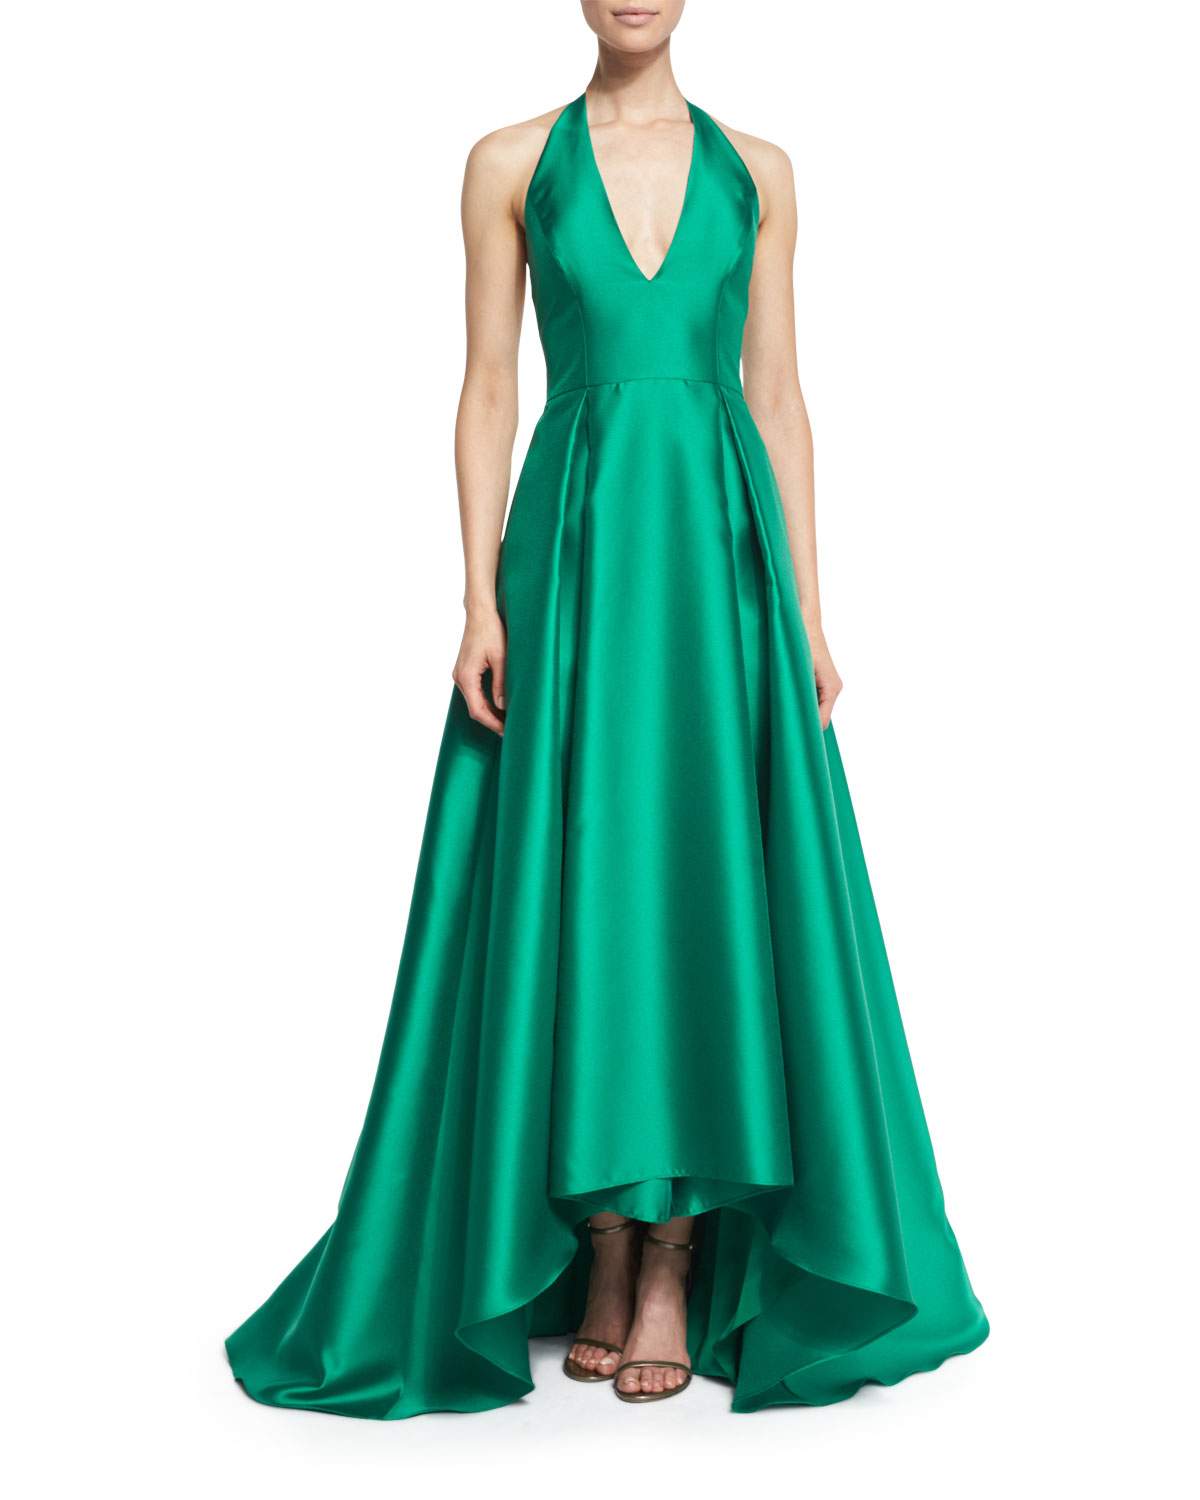 Badgley Mischka Satin Halter Ball Gown, Emerald | Neiman Marcus